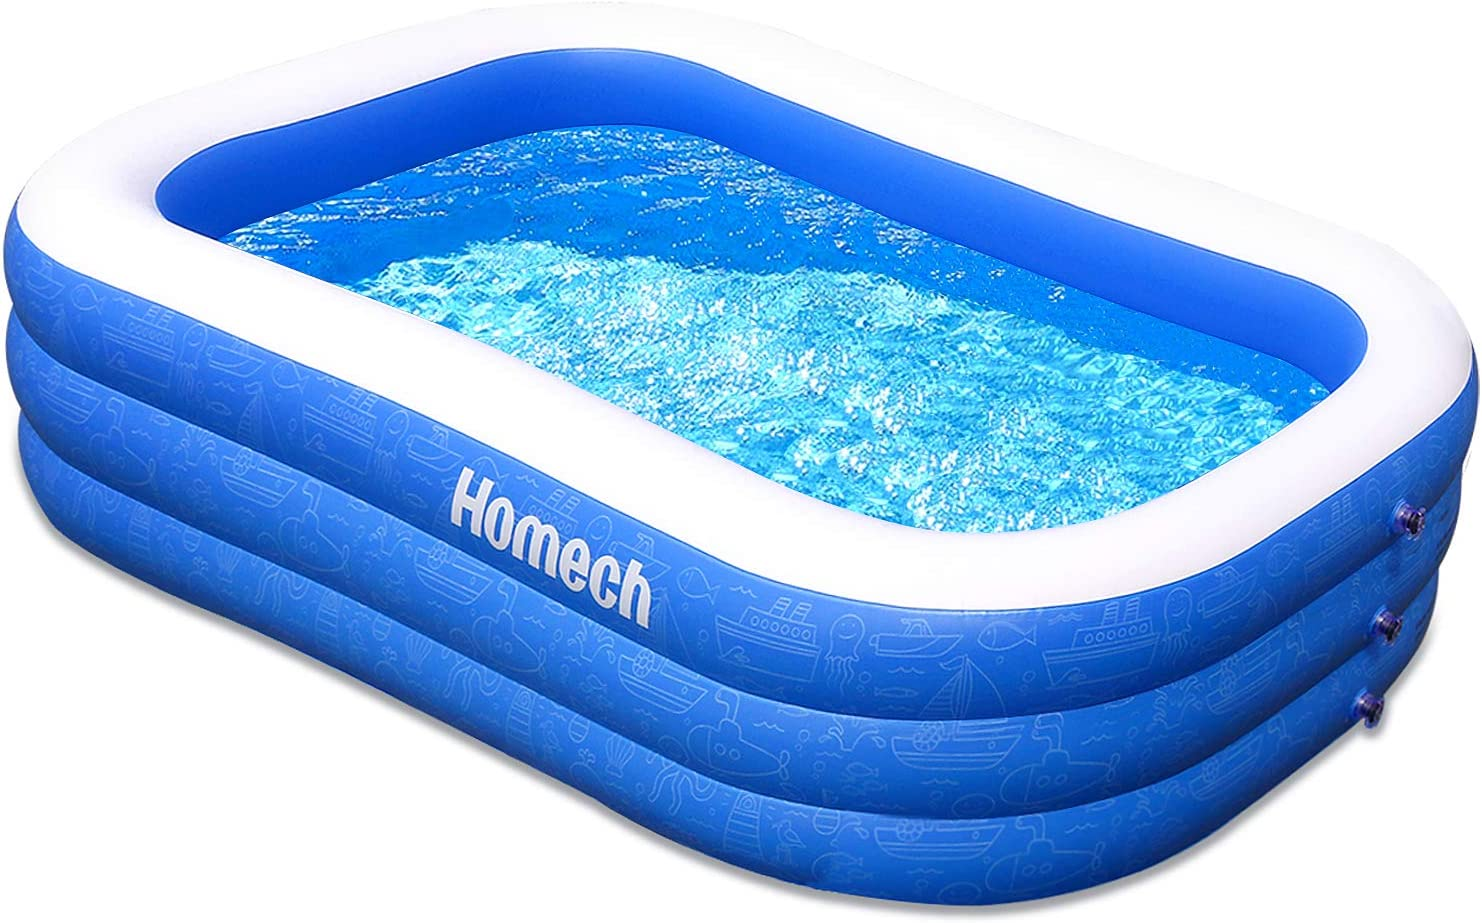 Homech Family Inflatable Swimming Pool 118 X 72 X 22 Full Sized Inflatable Lounge Pool For Baby Kiddie Kids Adult Infant Toddlers For Ages 3 Outdoor Garden Backyard Summer Water Party Toys